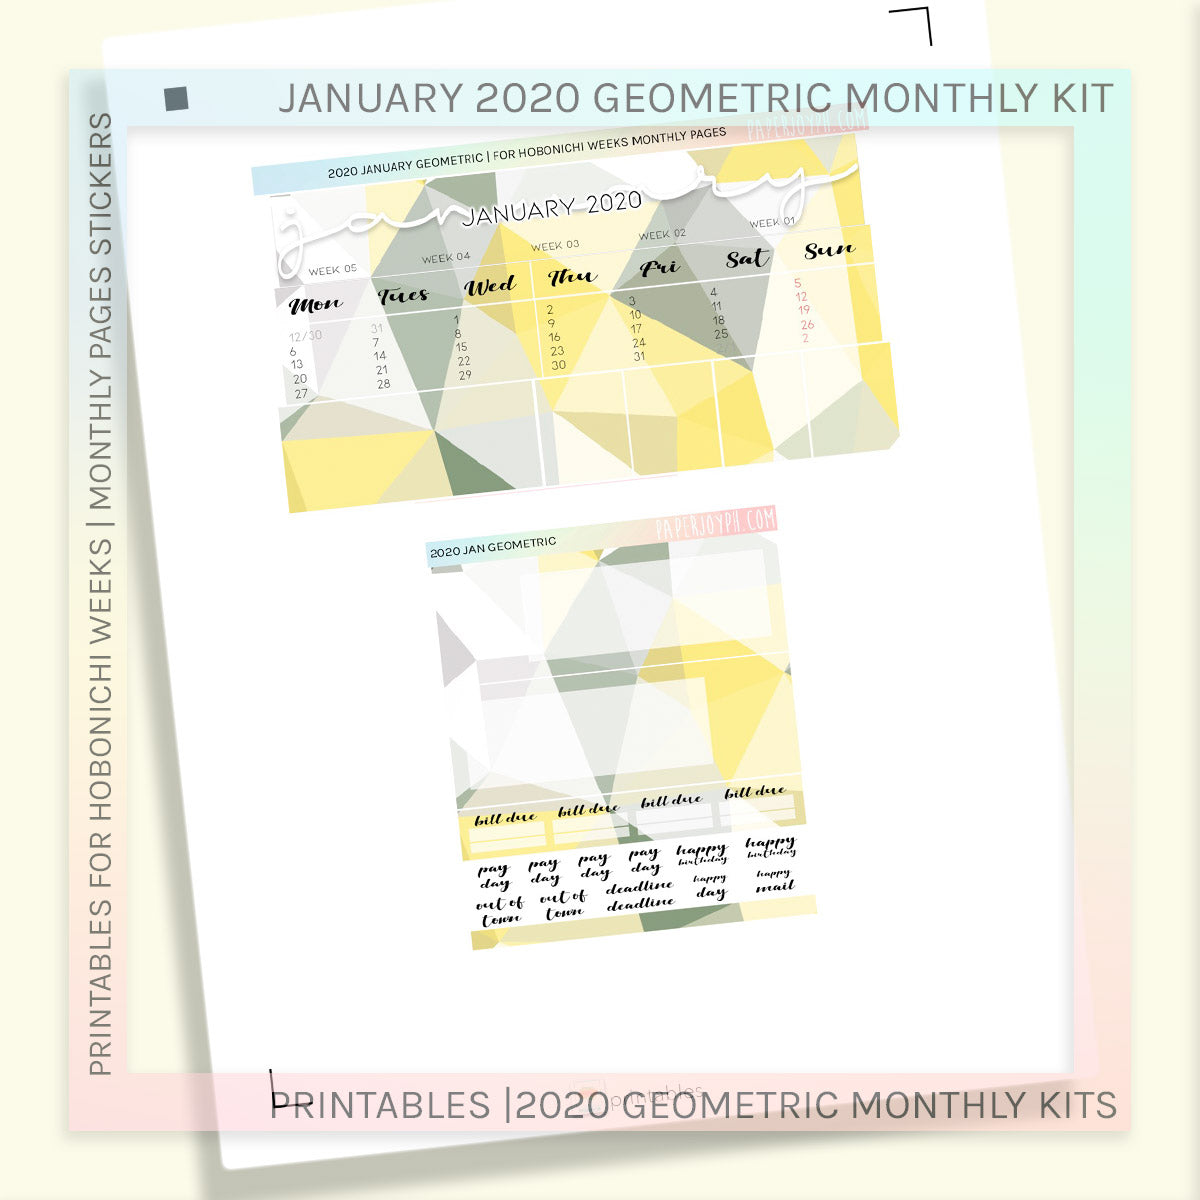 PRINTABLES | HOBONICHI WEEKS | 2020 MONTHLY PAGES | January Geometric 2020